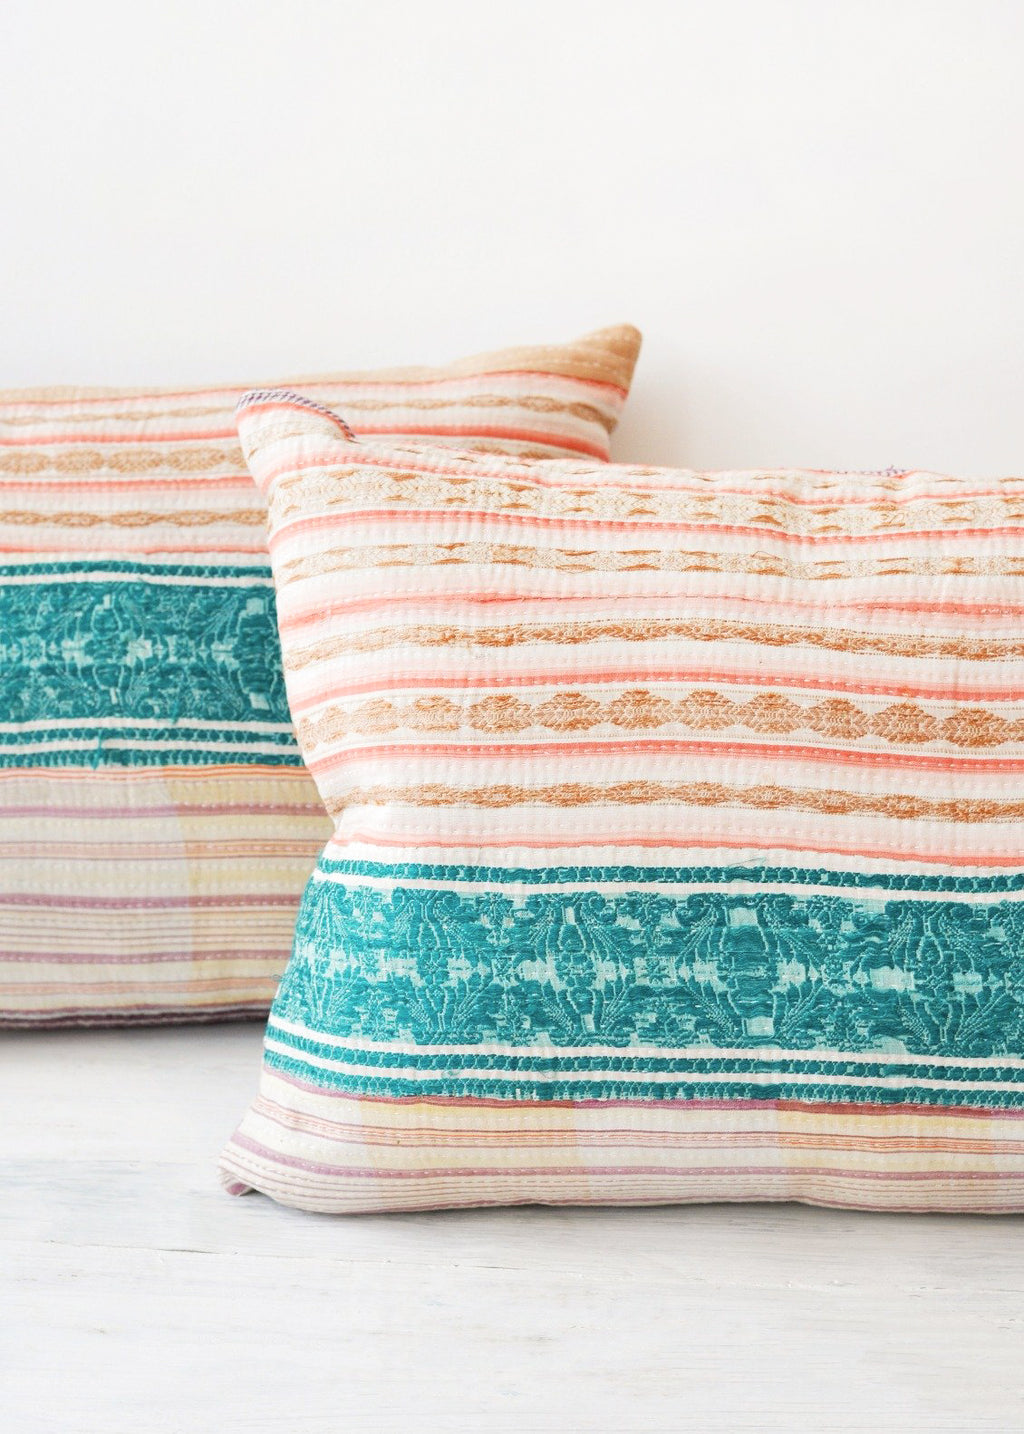 1: Two multicolored pillows made of vintage quilts.